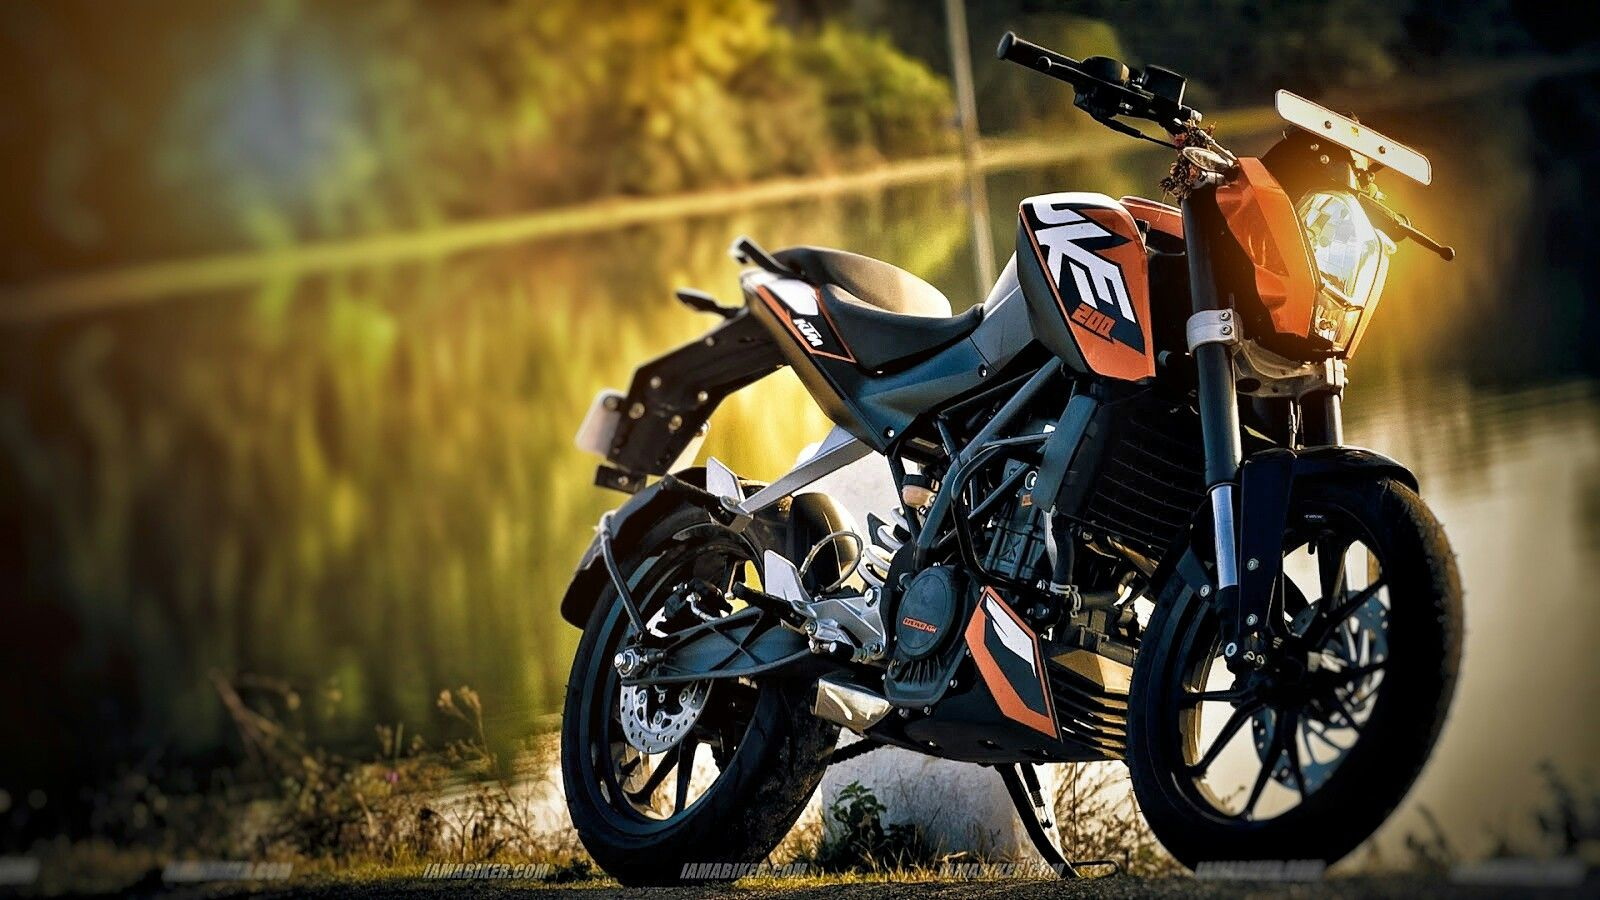 Picsart Editing Background Ktm Duke 200 Duke Bike Ktm